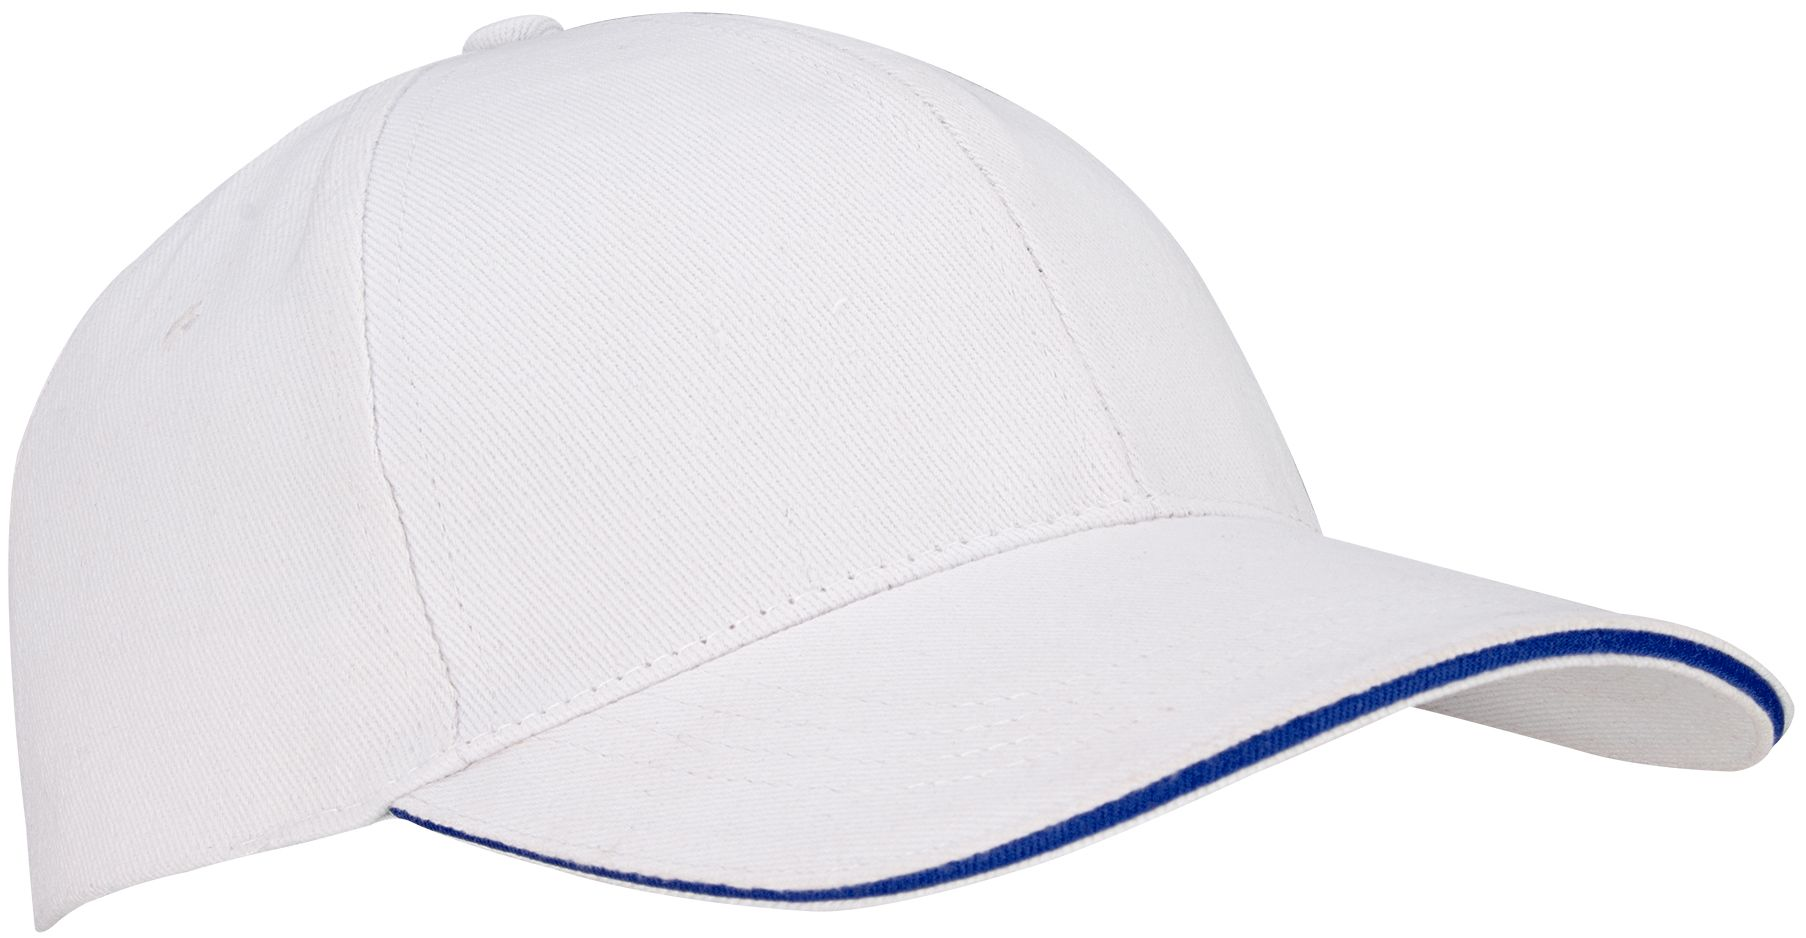 Baseballcap Junior • Sandwich •